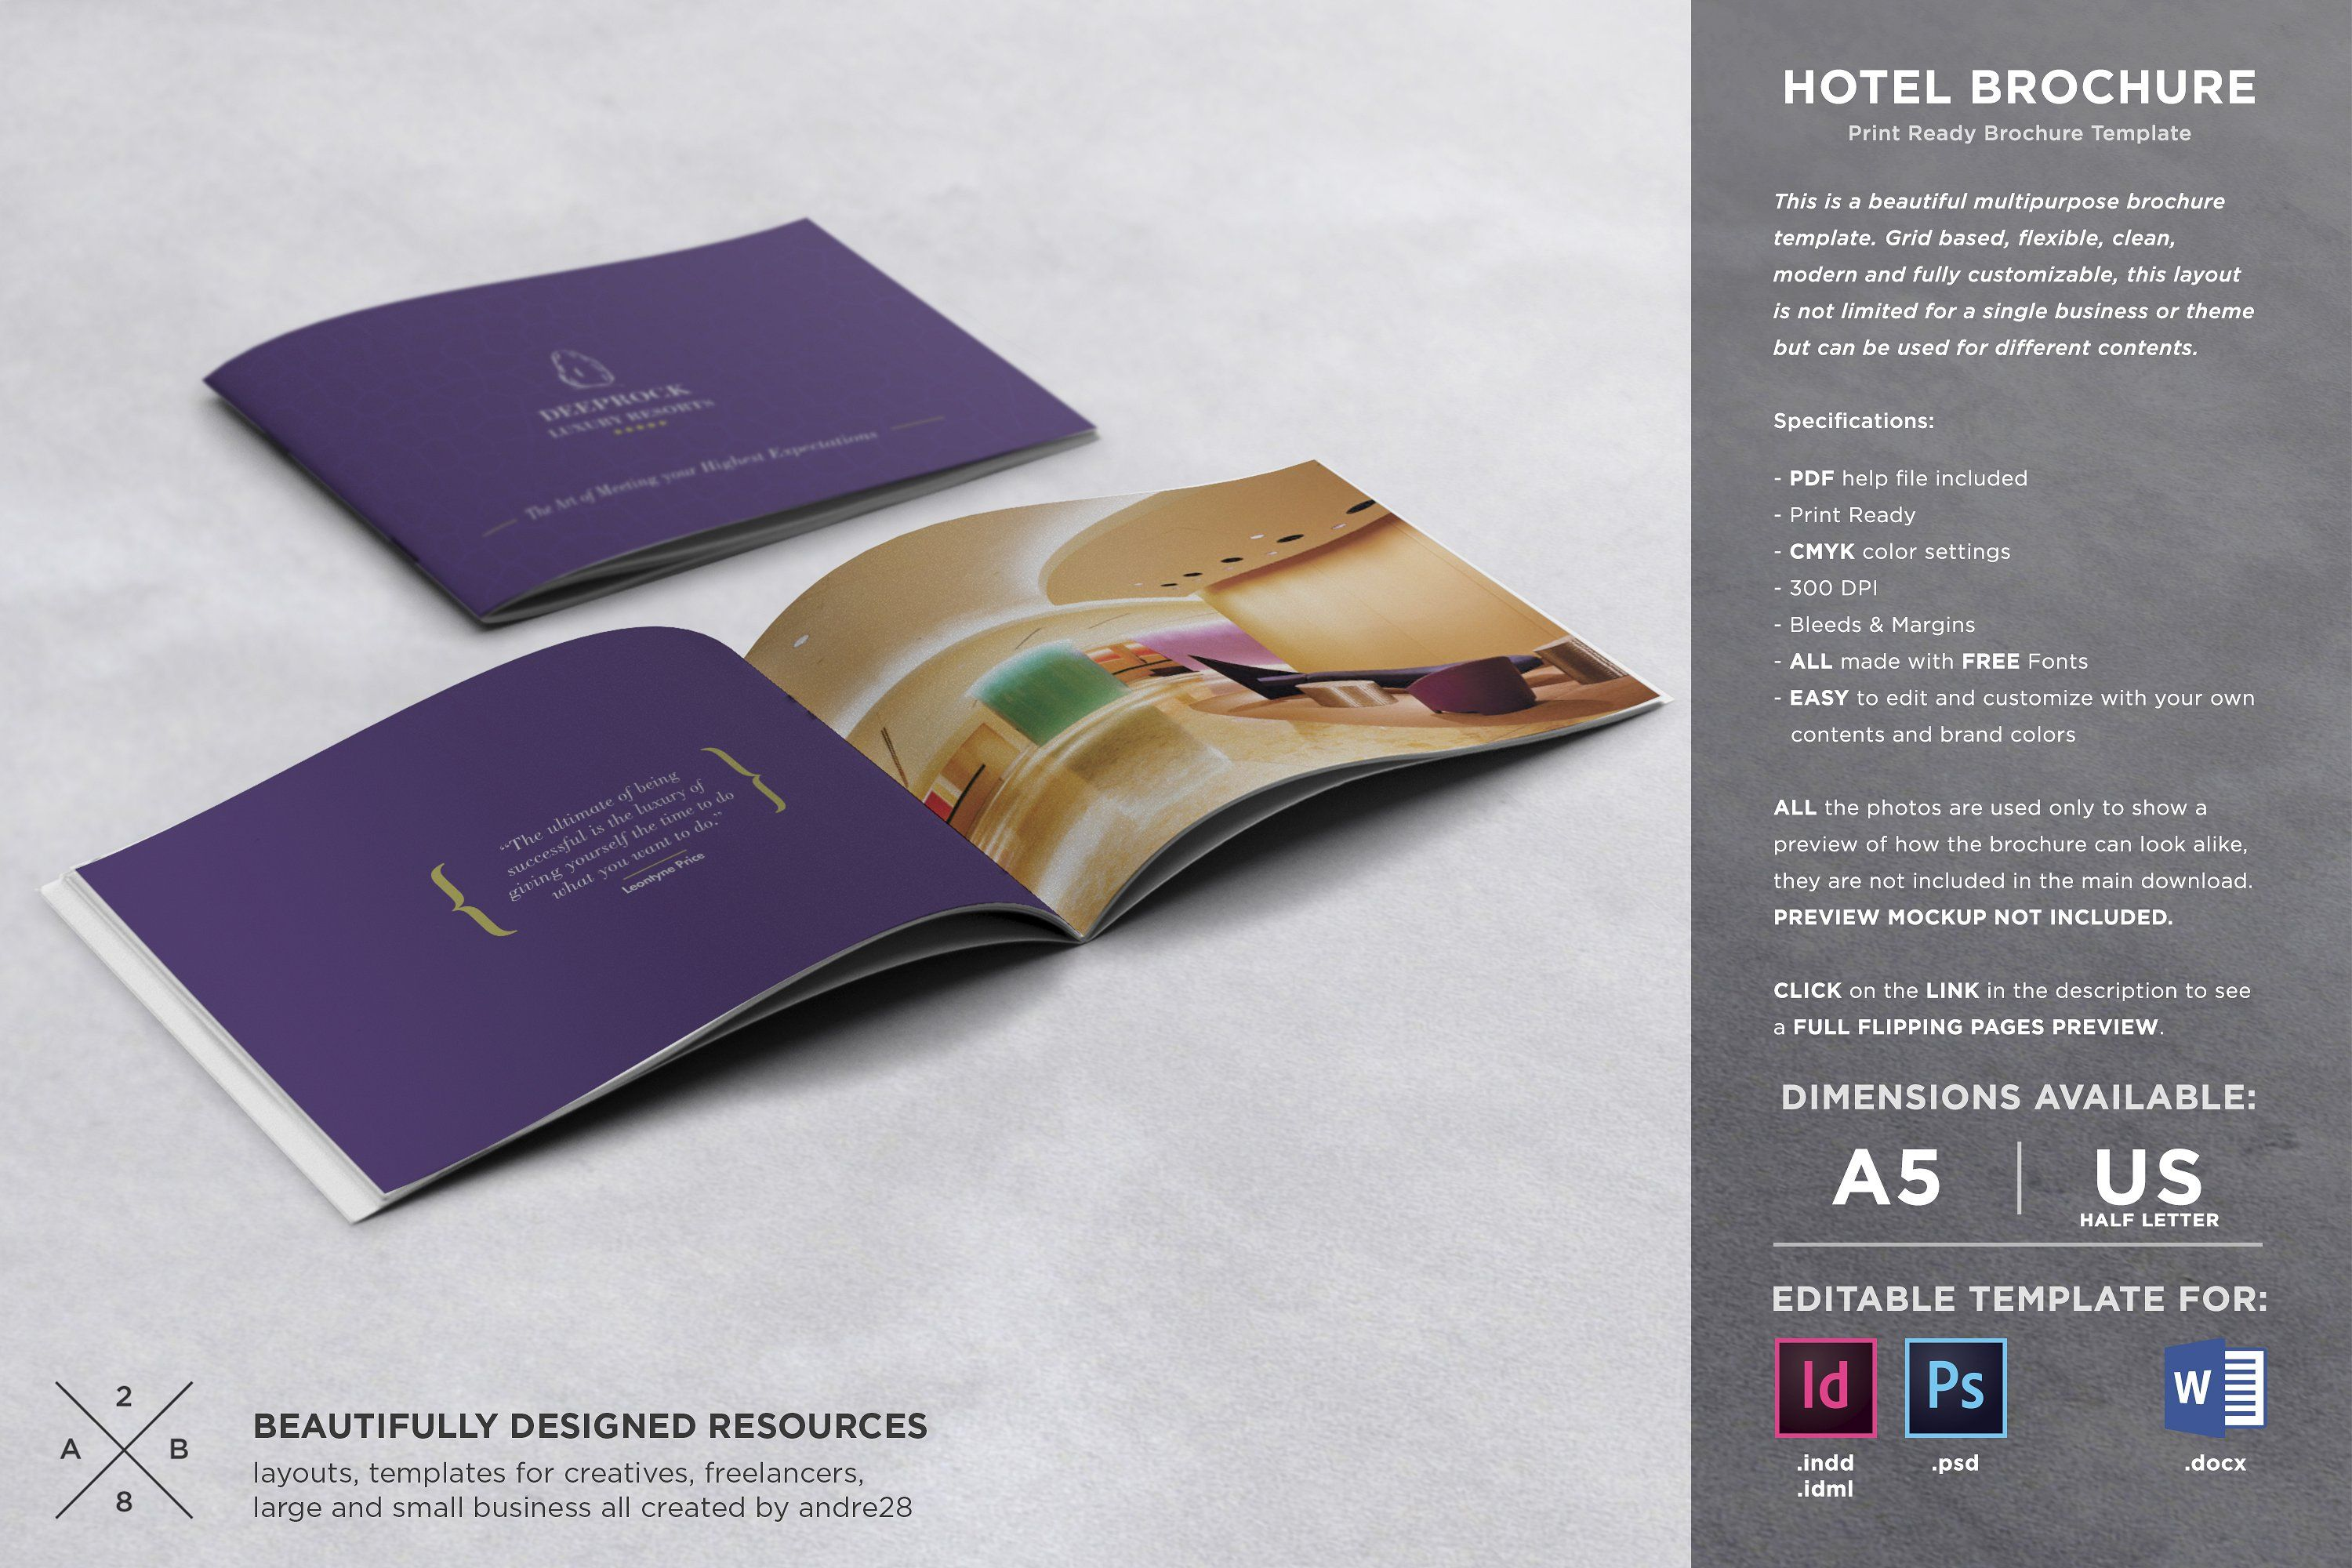 Hotel Brochure Template | Pinterest